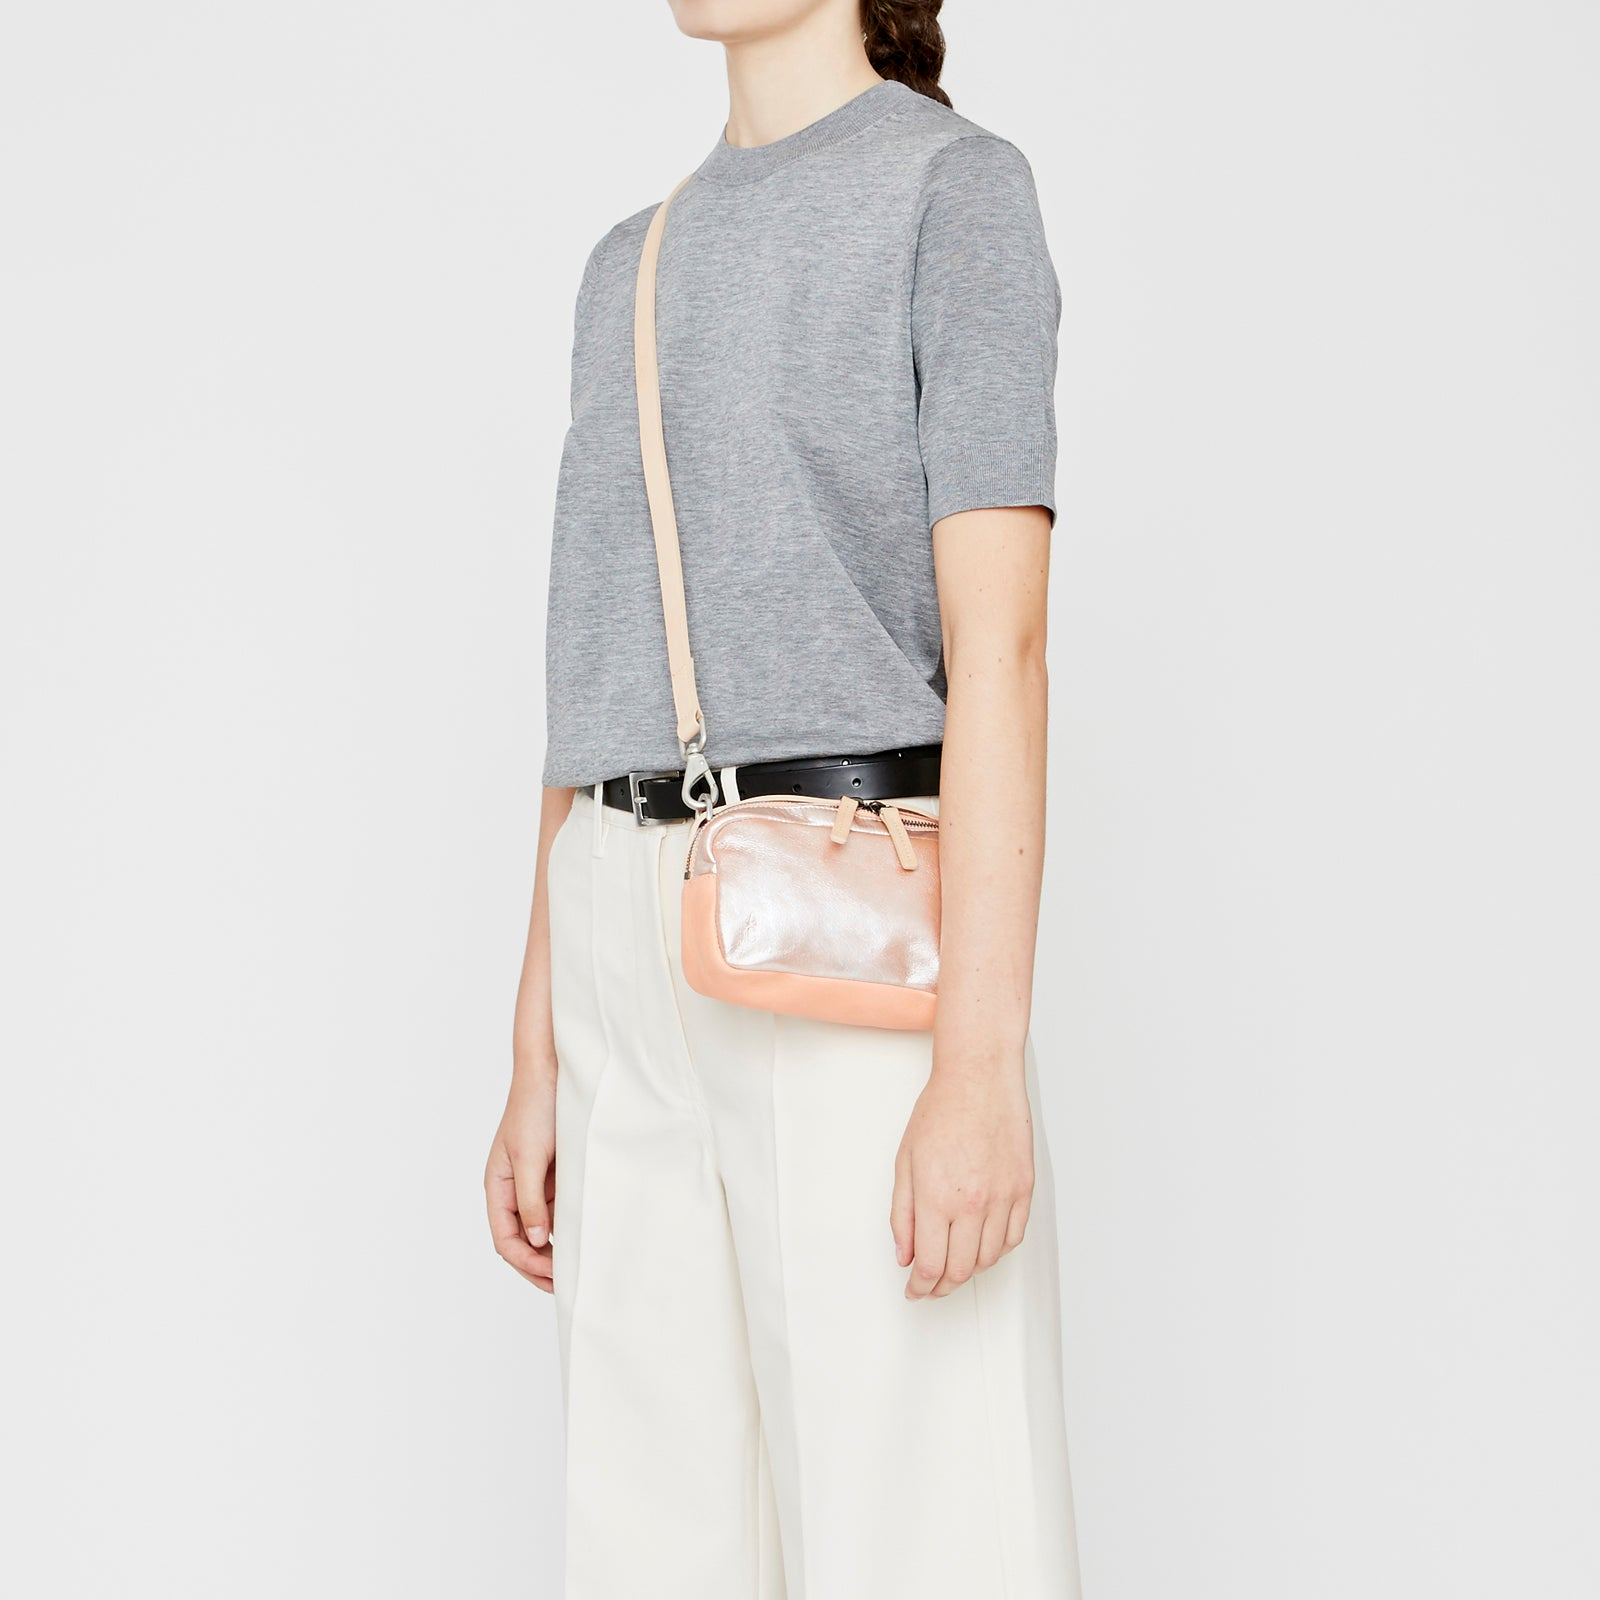 ... Ally Capellino, Leather, Shoulder bag, leather, pink, peach, bag, ... 0cfc792871